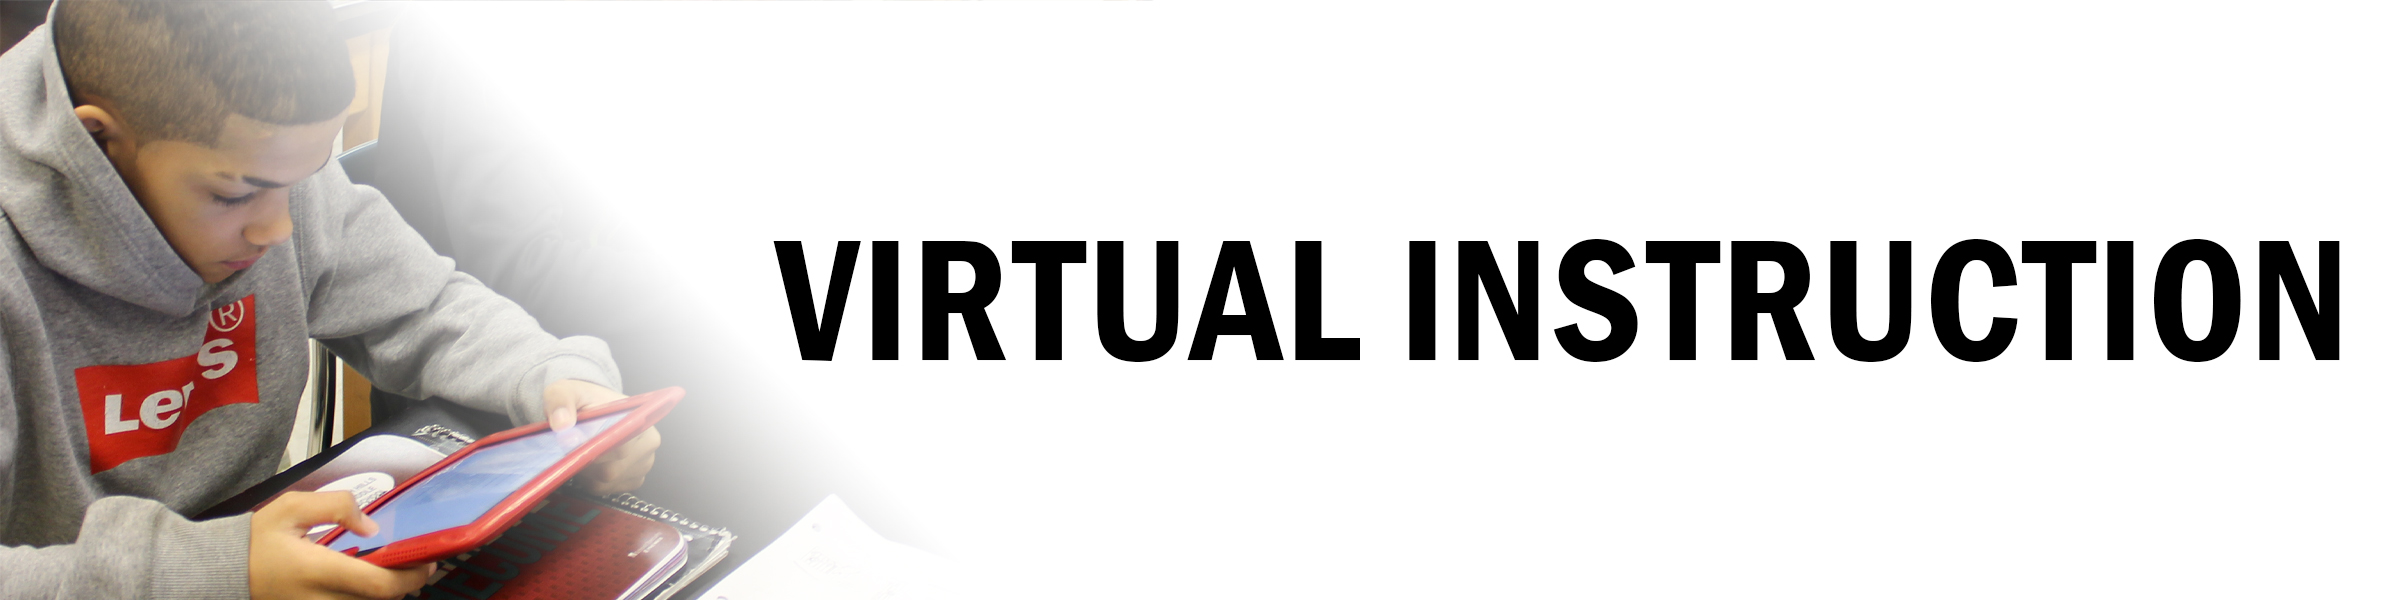 Virtual Instruction